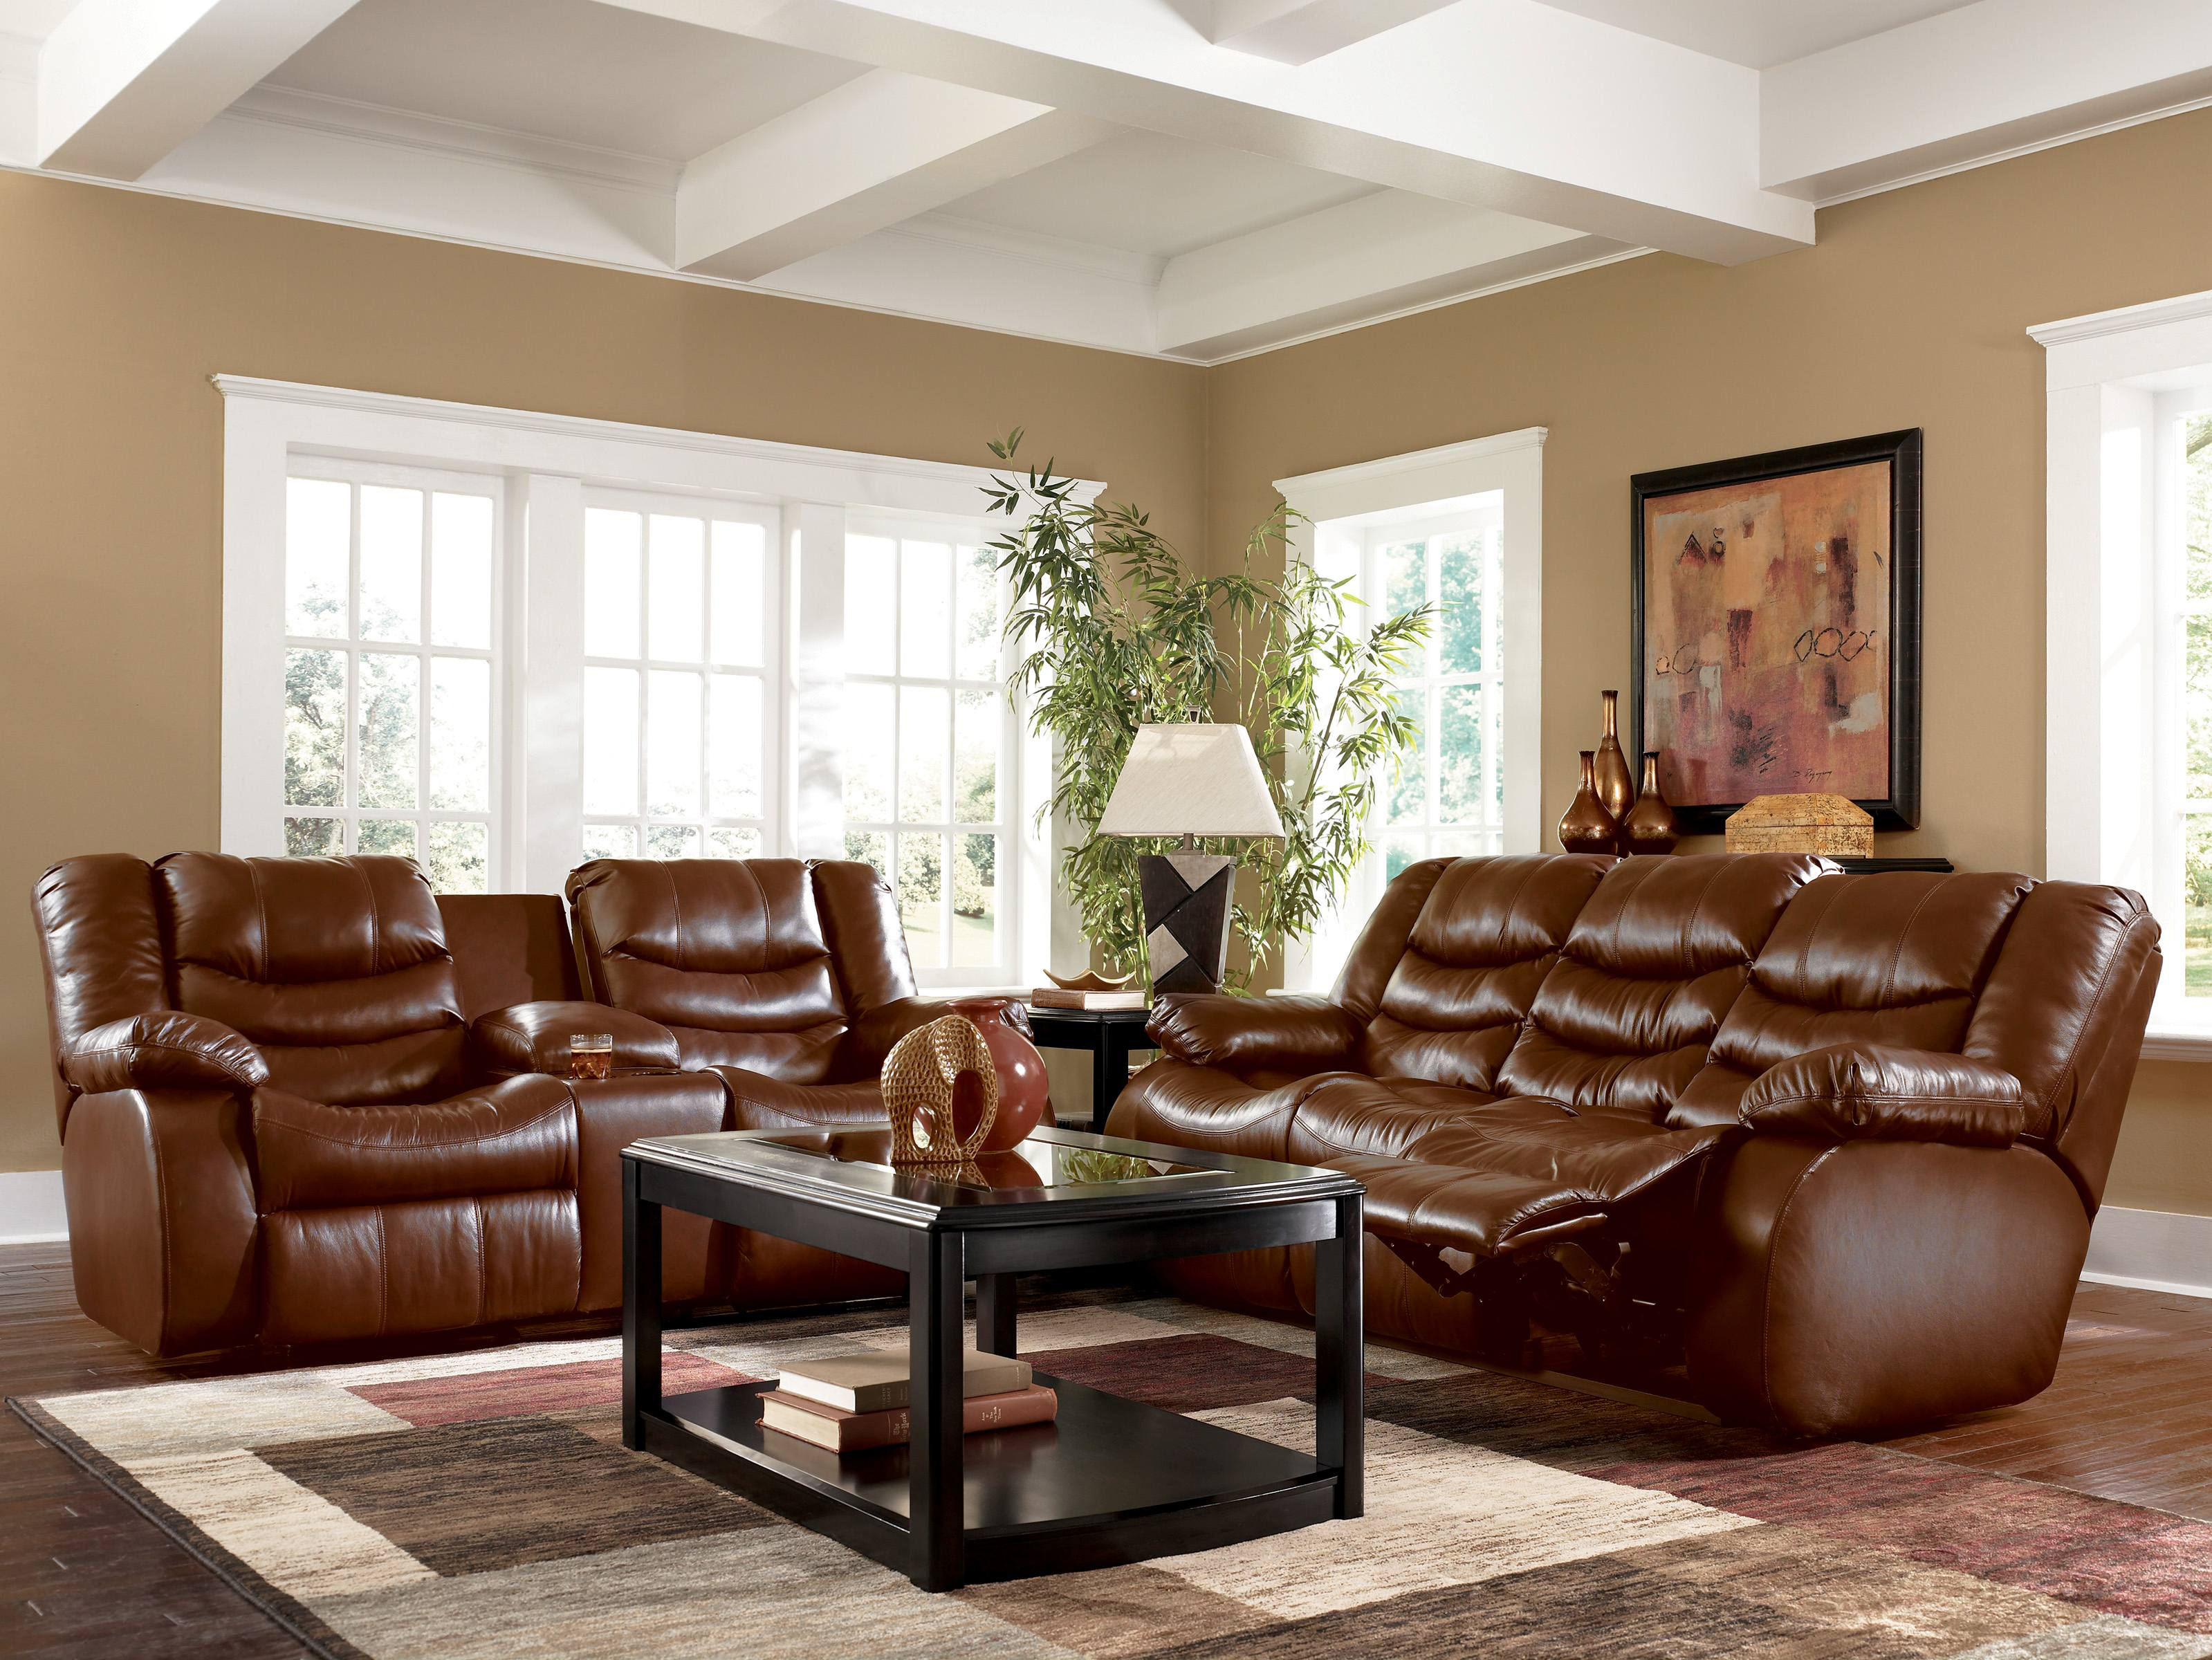 living room ideas with leather furniture furniture charming light brown leather sofa decorating ideas brown from GVMNFSE